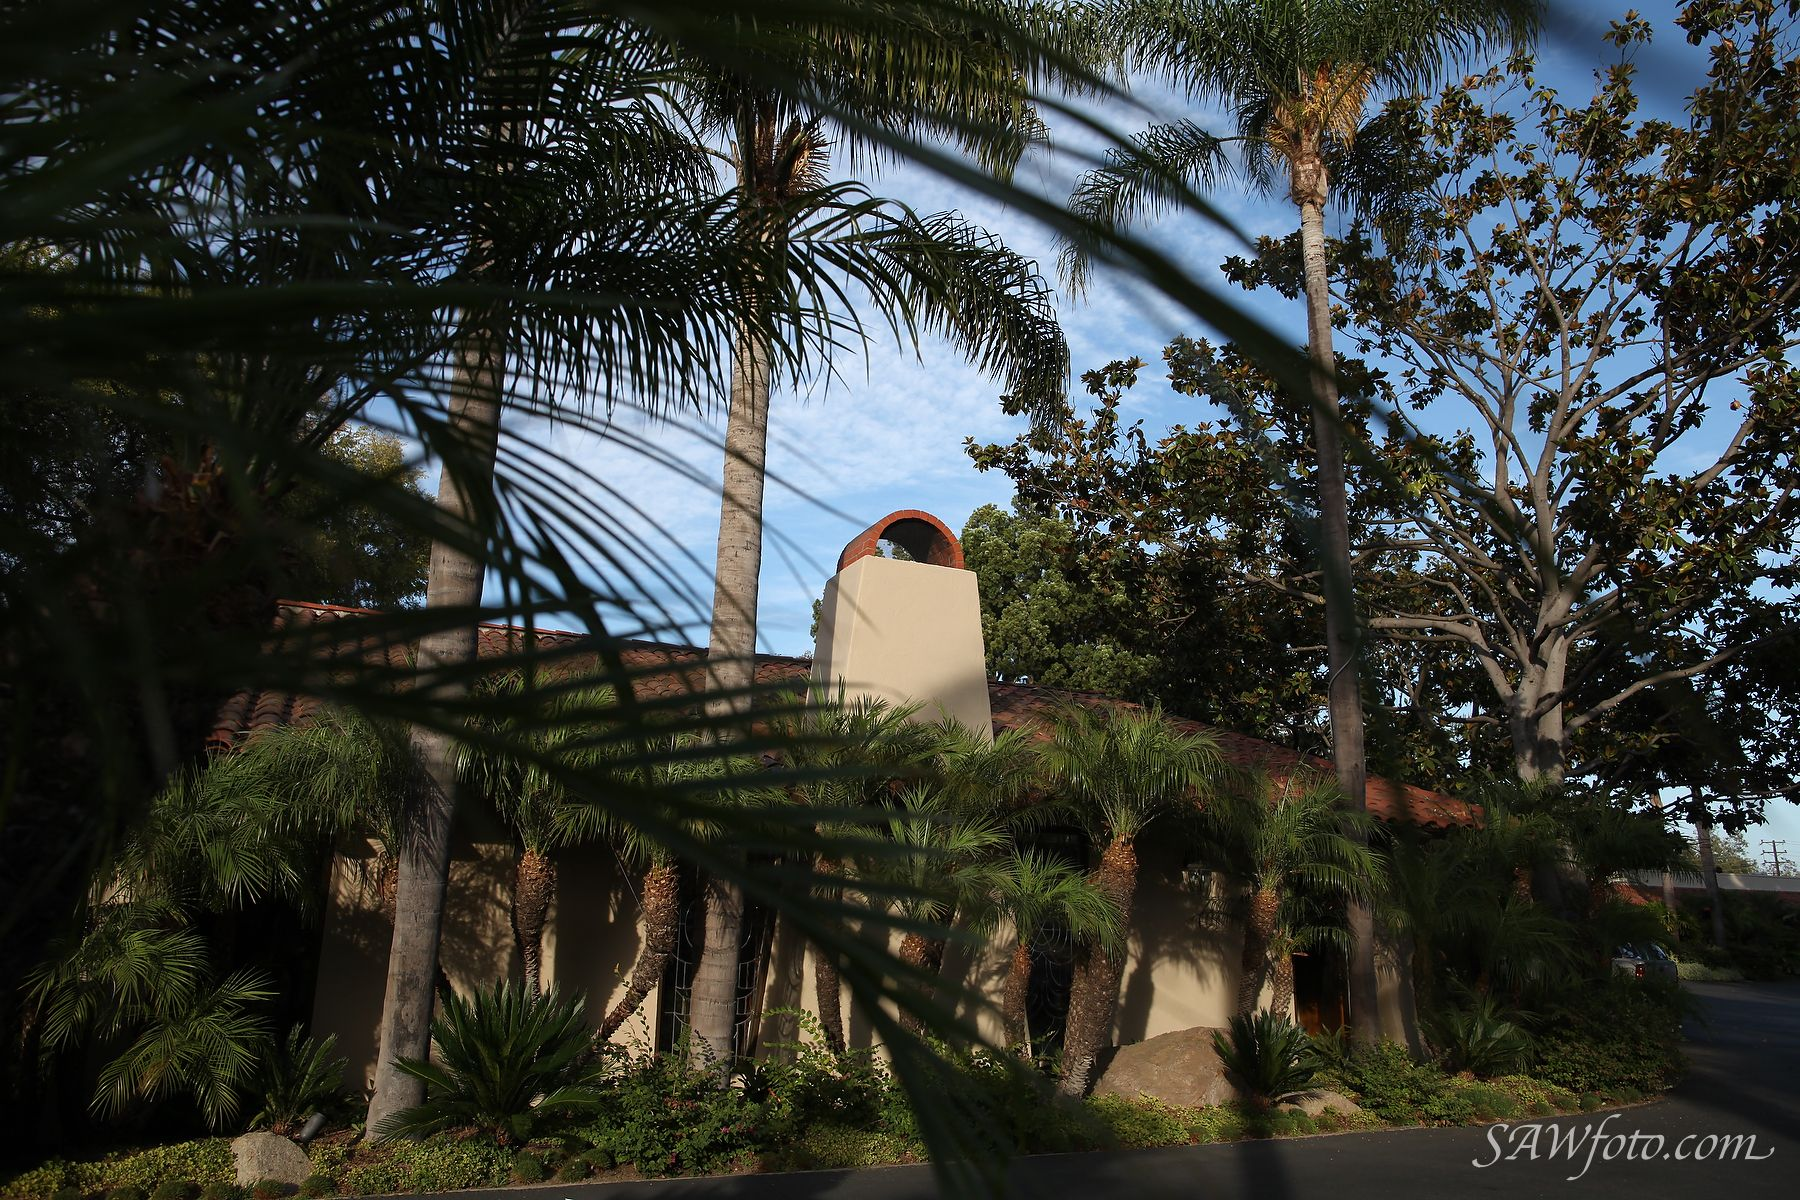 The palm tree lined drive lends a tropical feel to Mission Terrace.